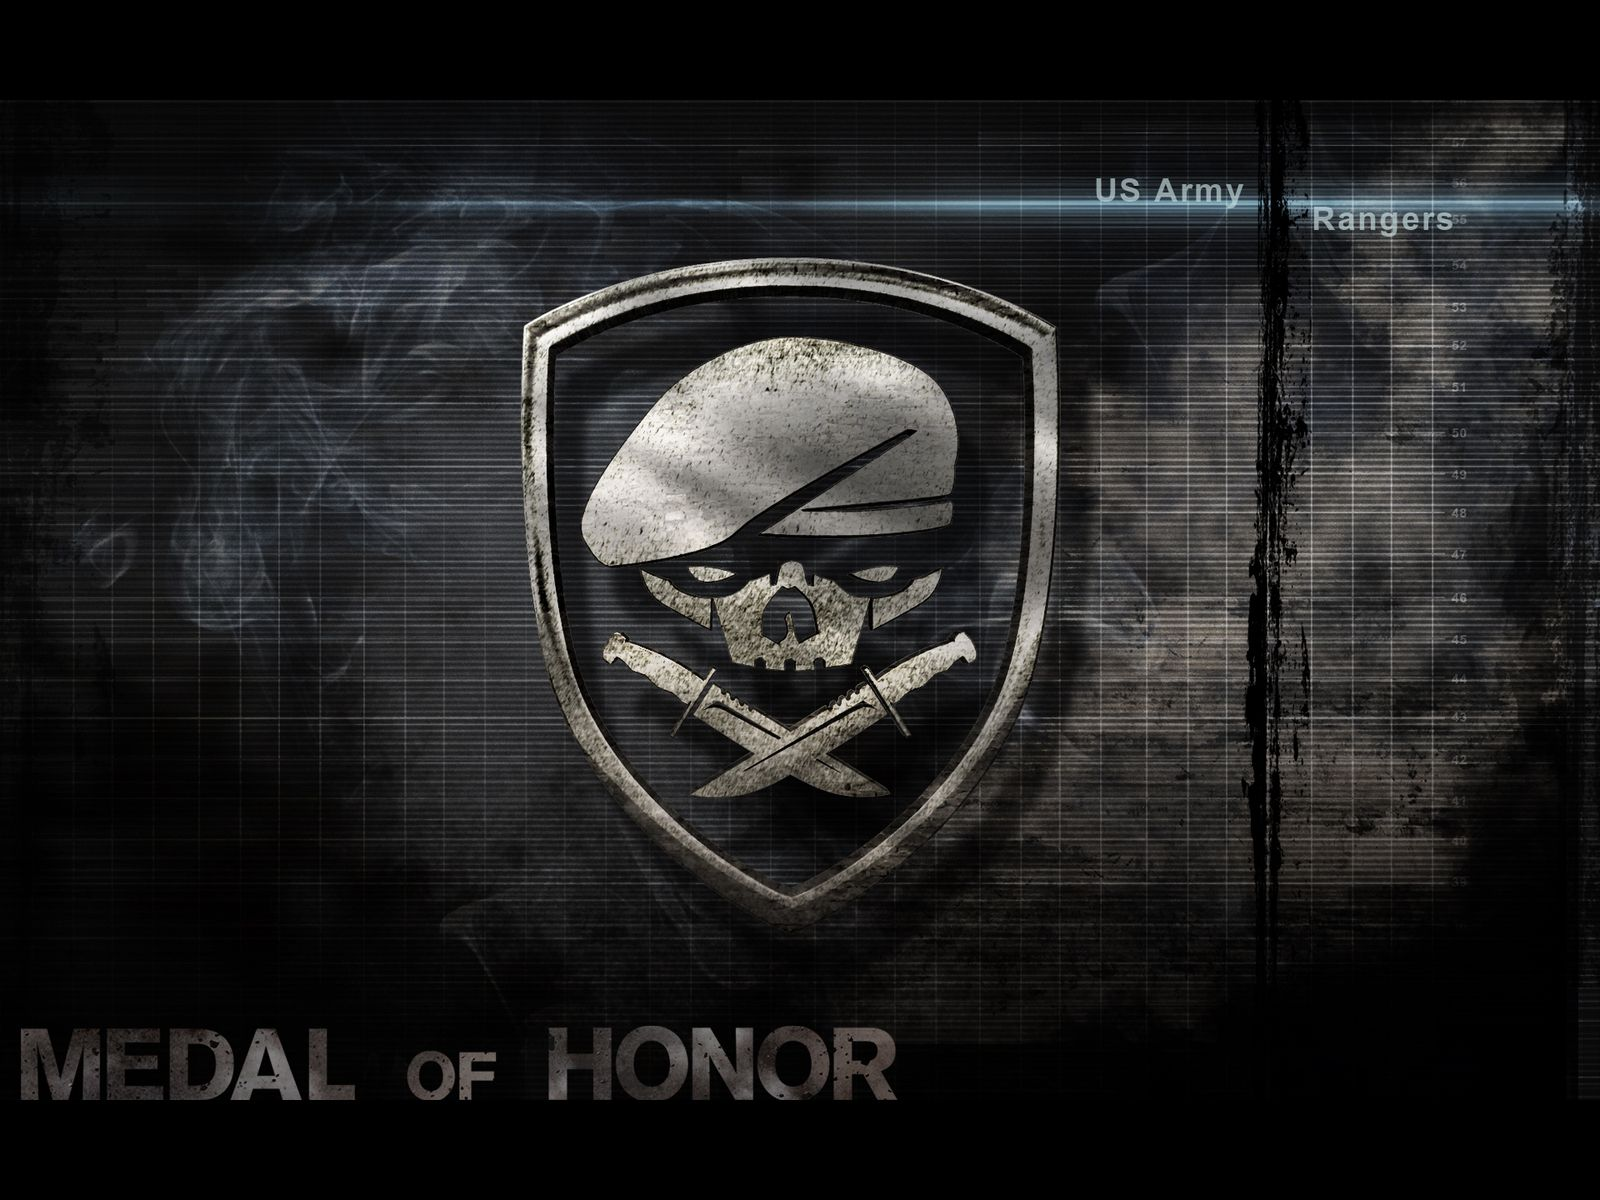 Army Rangers US Army Rangers Medal of Honor Medal of